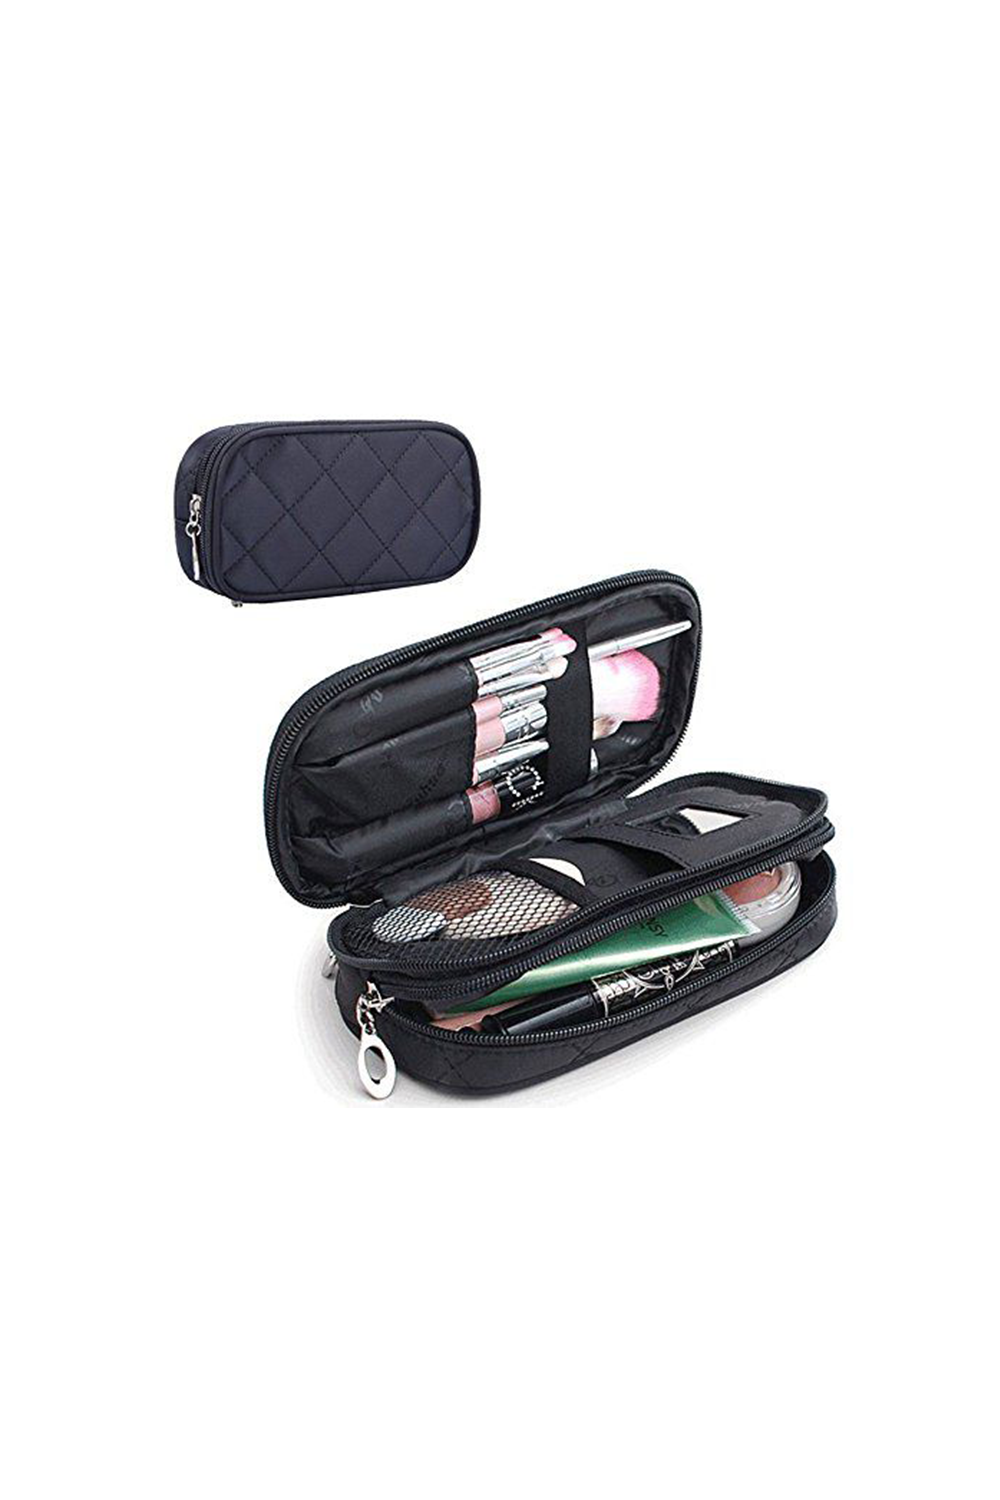 21 Best Makeup And Cosmetic Cases Travel Makeup Bags